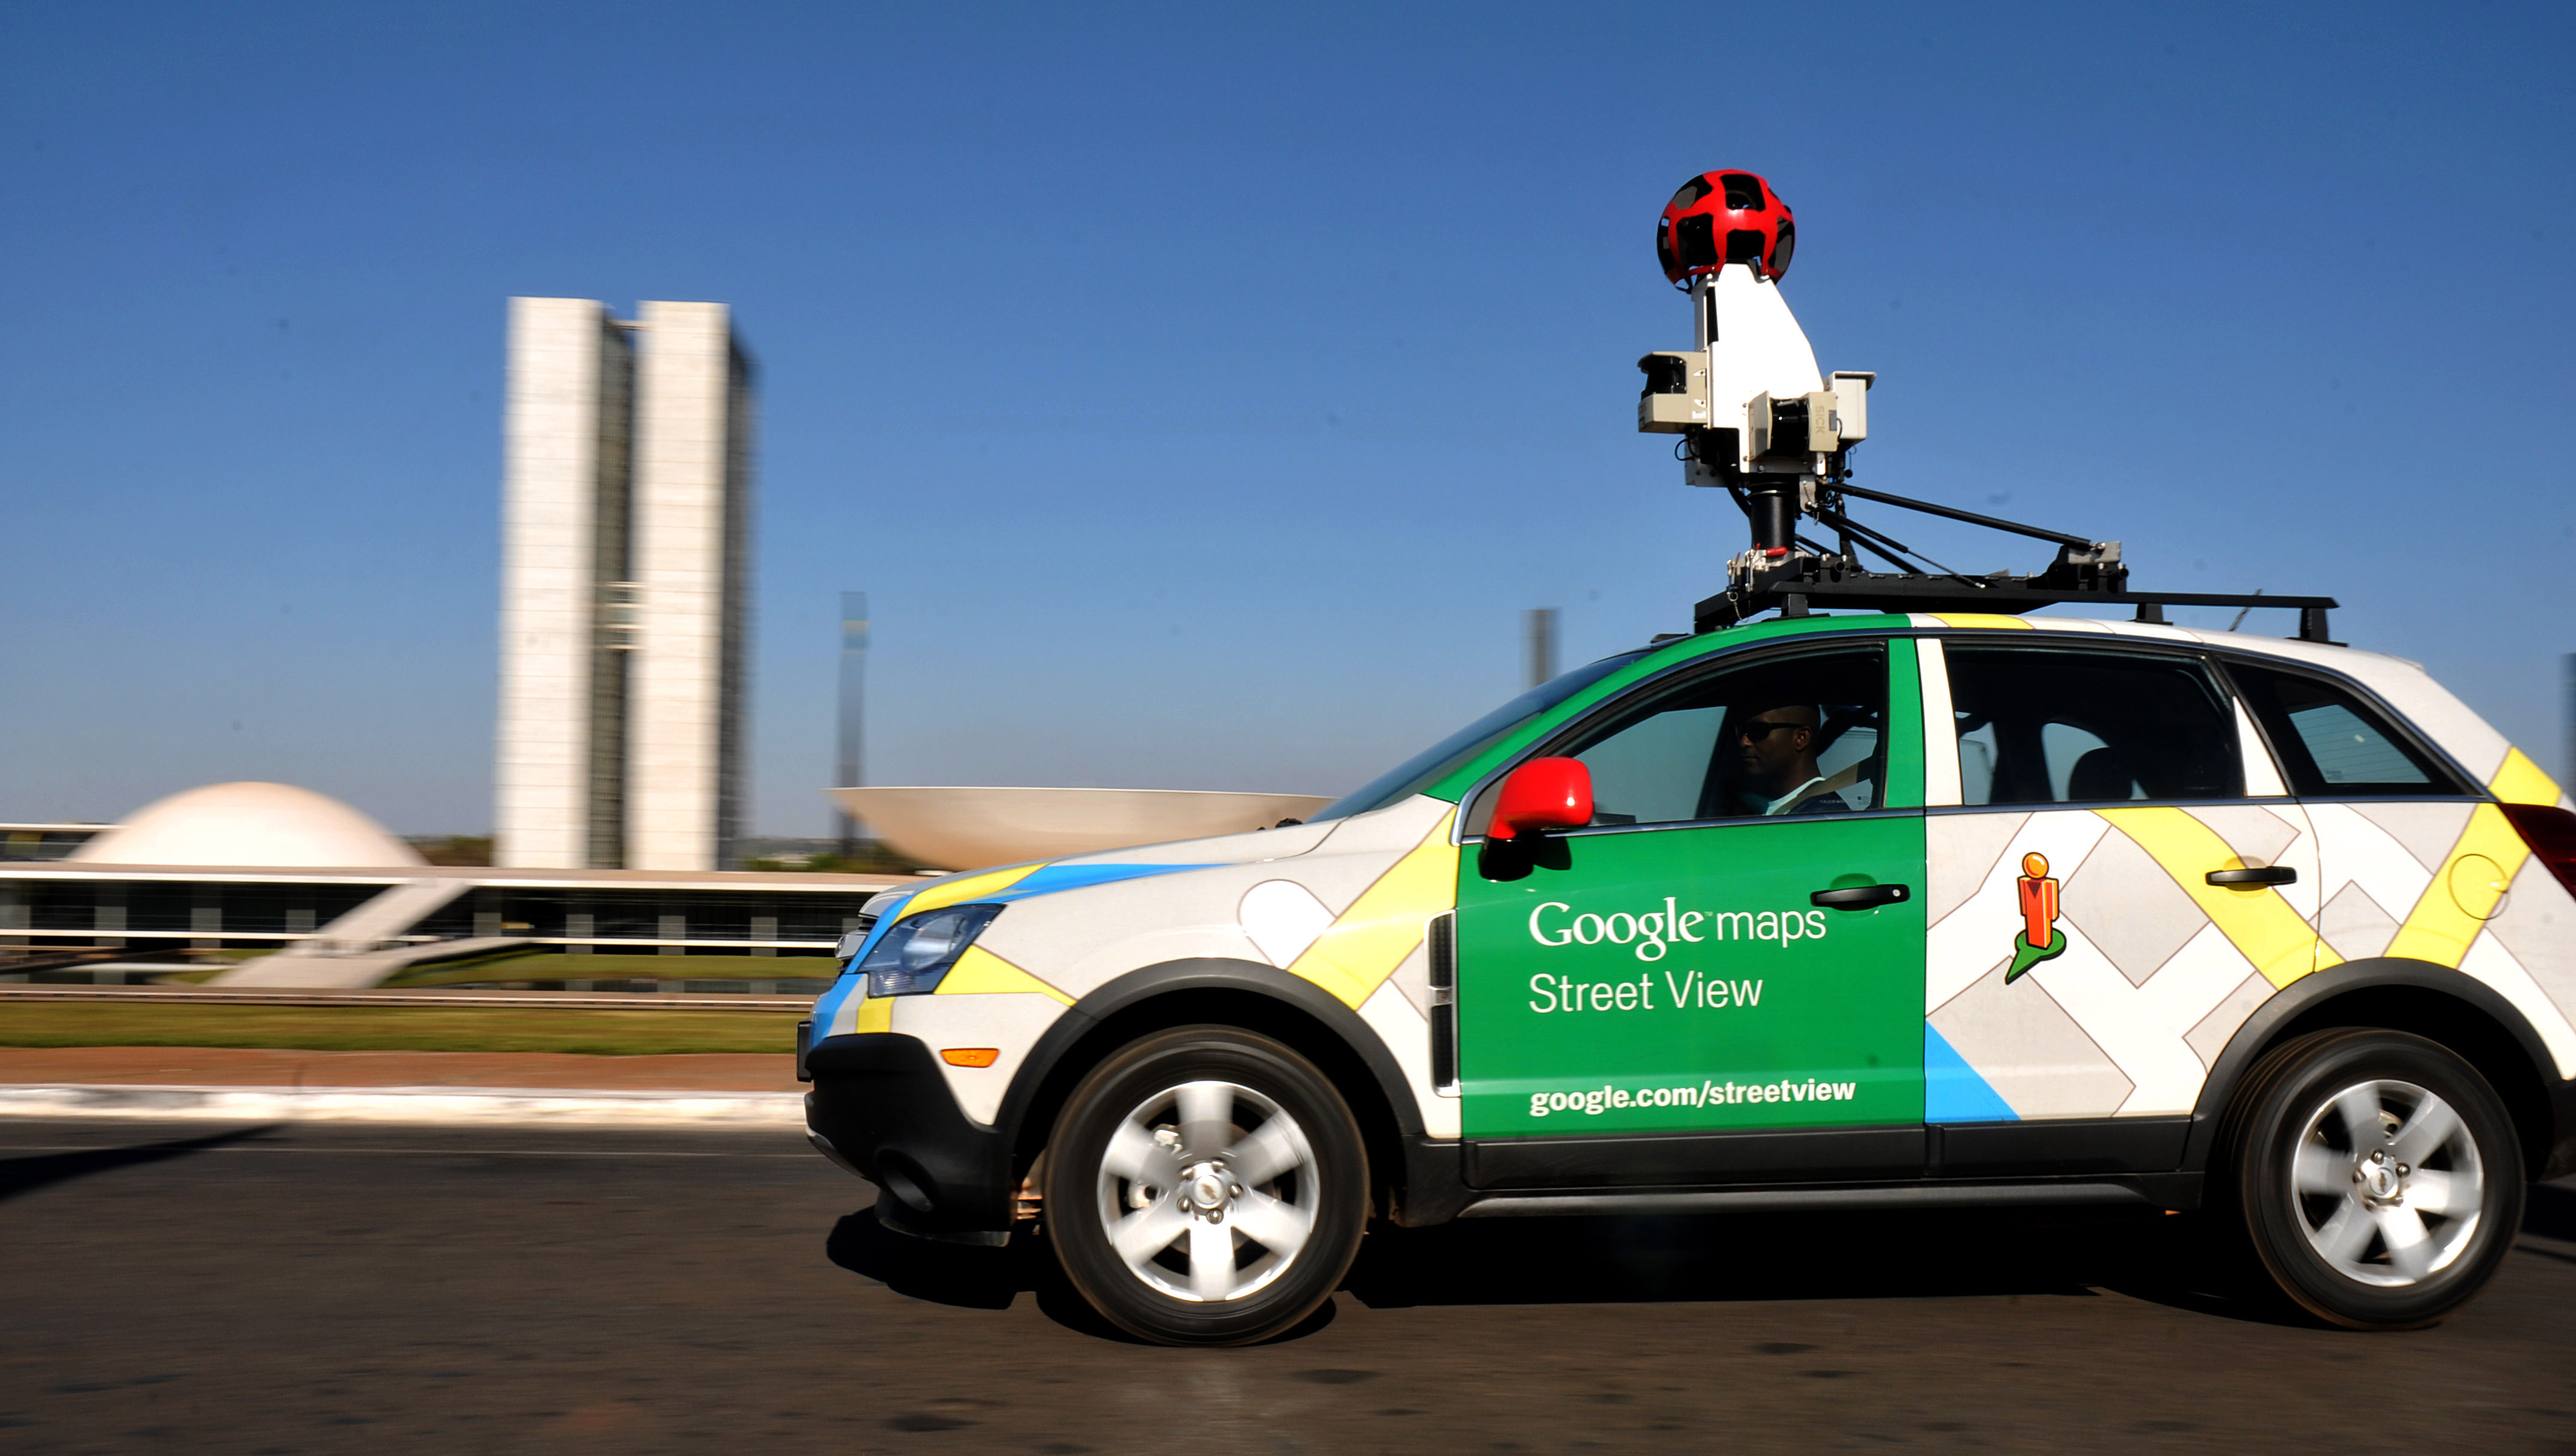 Google now lets you create your own Maps Street View using Photo Sphere or your dSLR camera